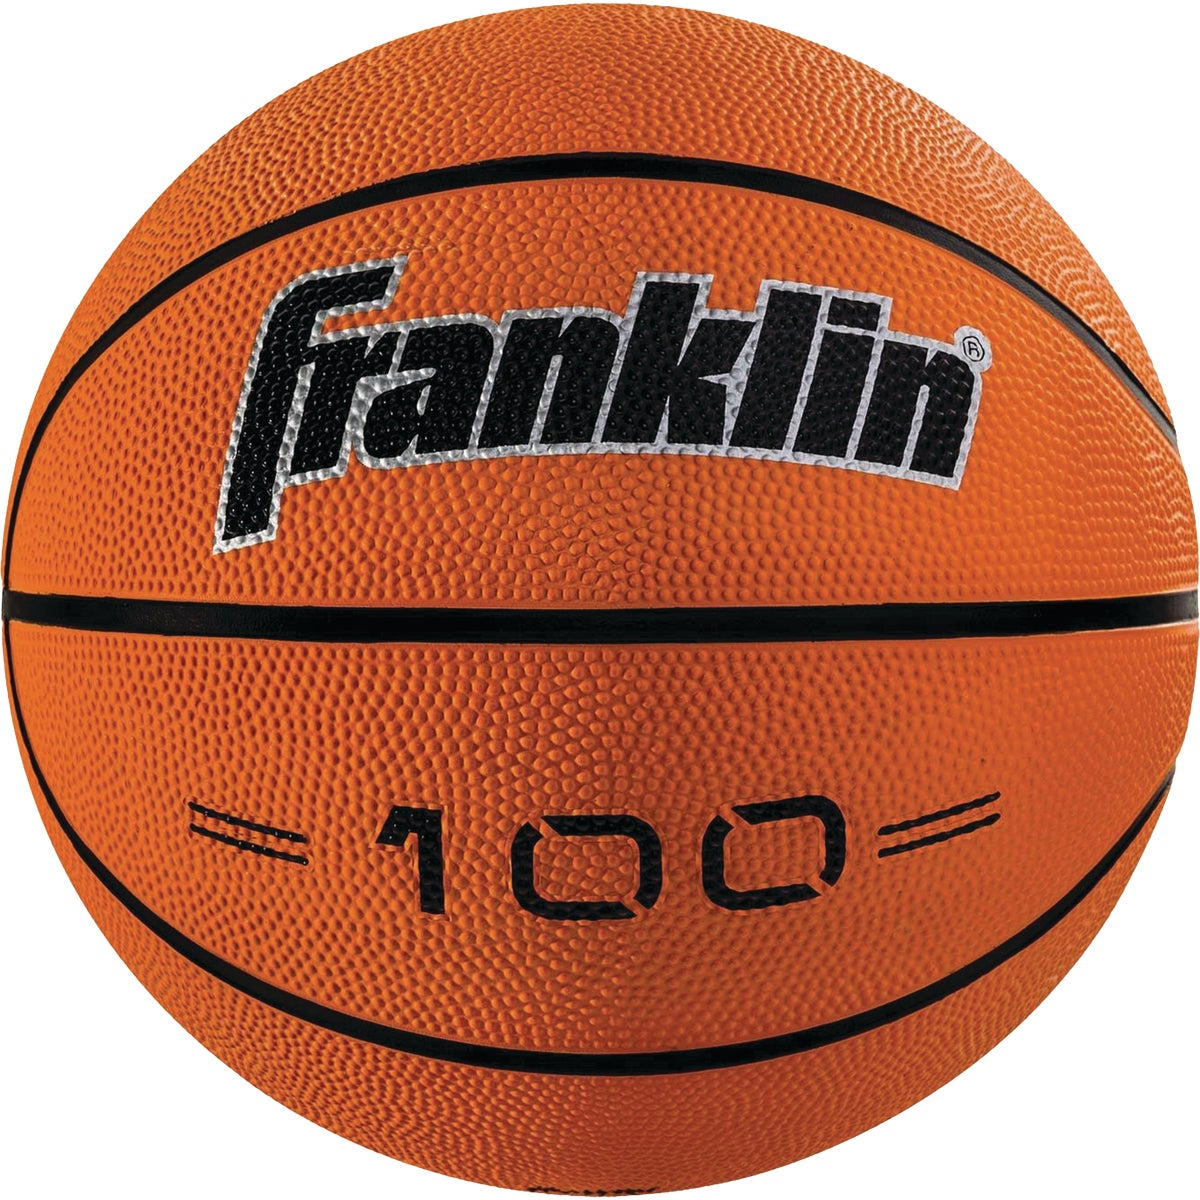 29.5 TIP-UP BASKETBALL - 73-709 by Spalding Sports